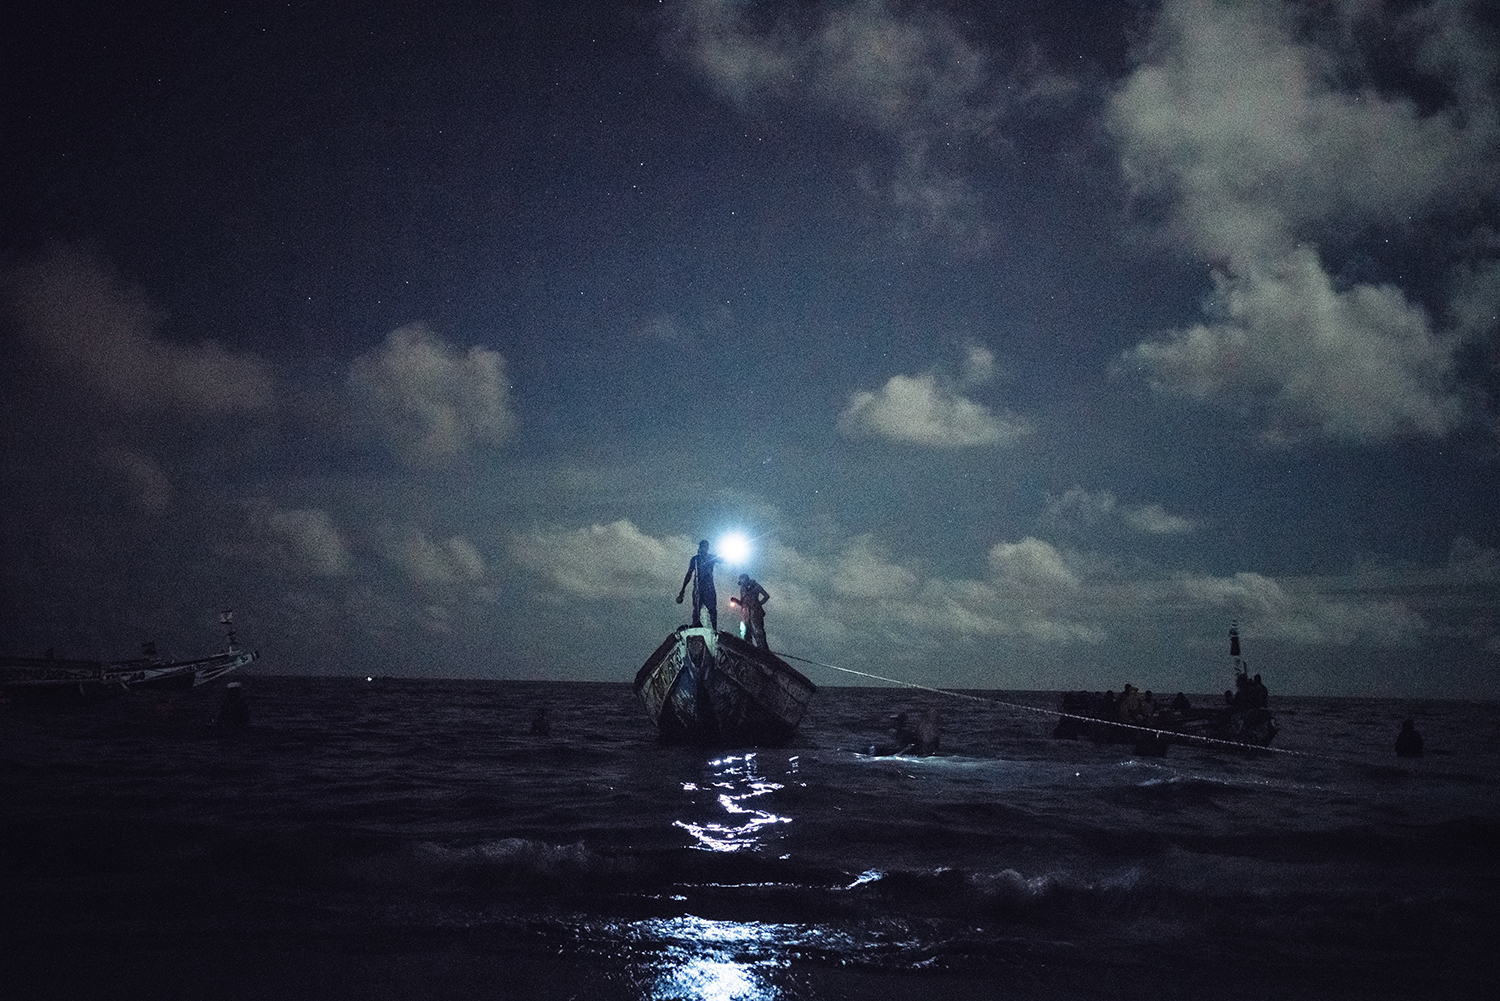 Just after midnight, Diouf and his crew finish a day's work at sea and have come in to shore in Joal-Fadiouth, Senegal, southeast of Dakar, July 15, 2016. According to Diouf, they used to be able to fish from the shore, but in recent years, they have to venture farther out to sea, sometimes as much as 25 miles, to find enough fish.